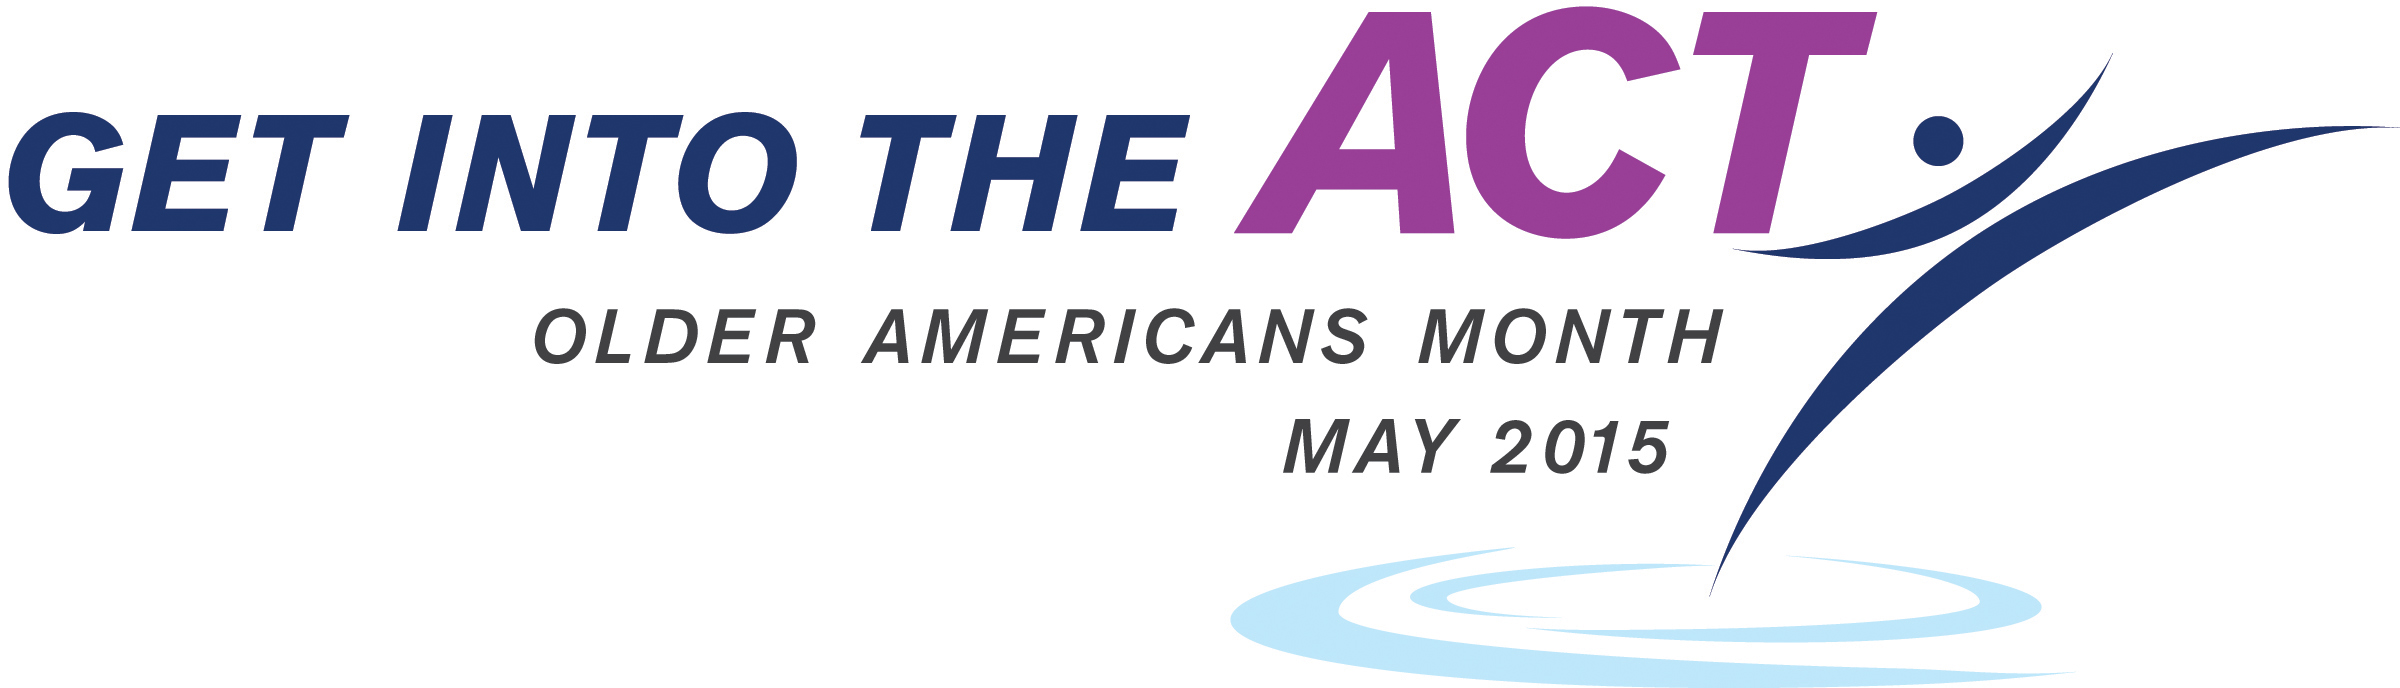 Get Into The Act Logo